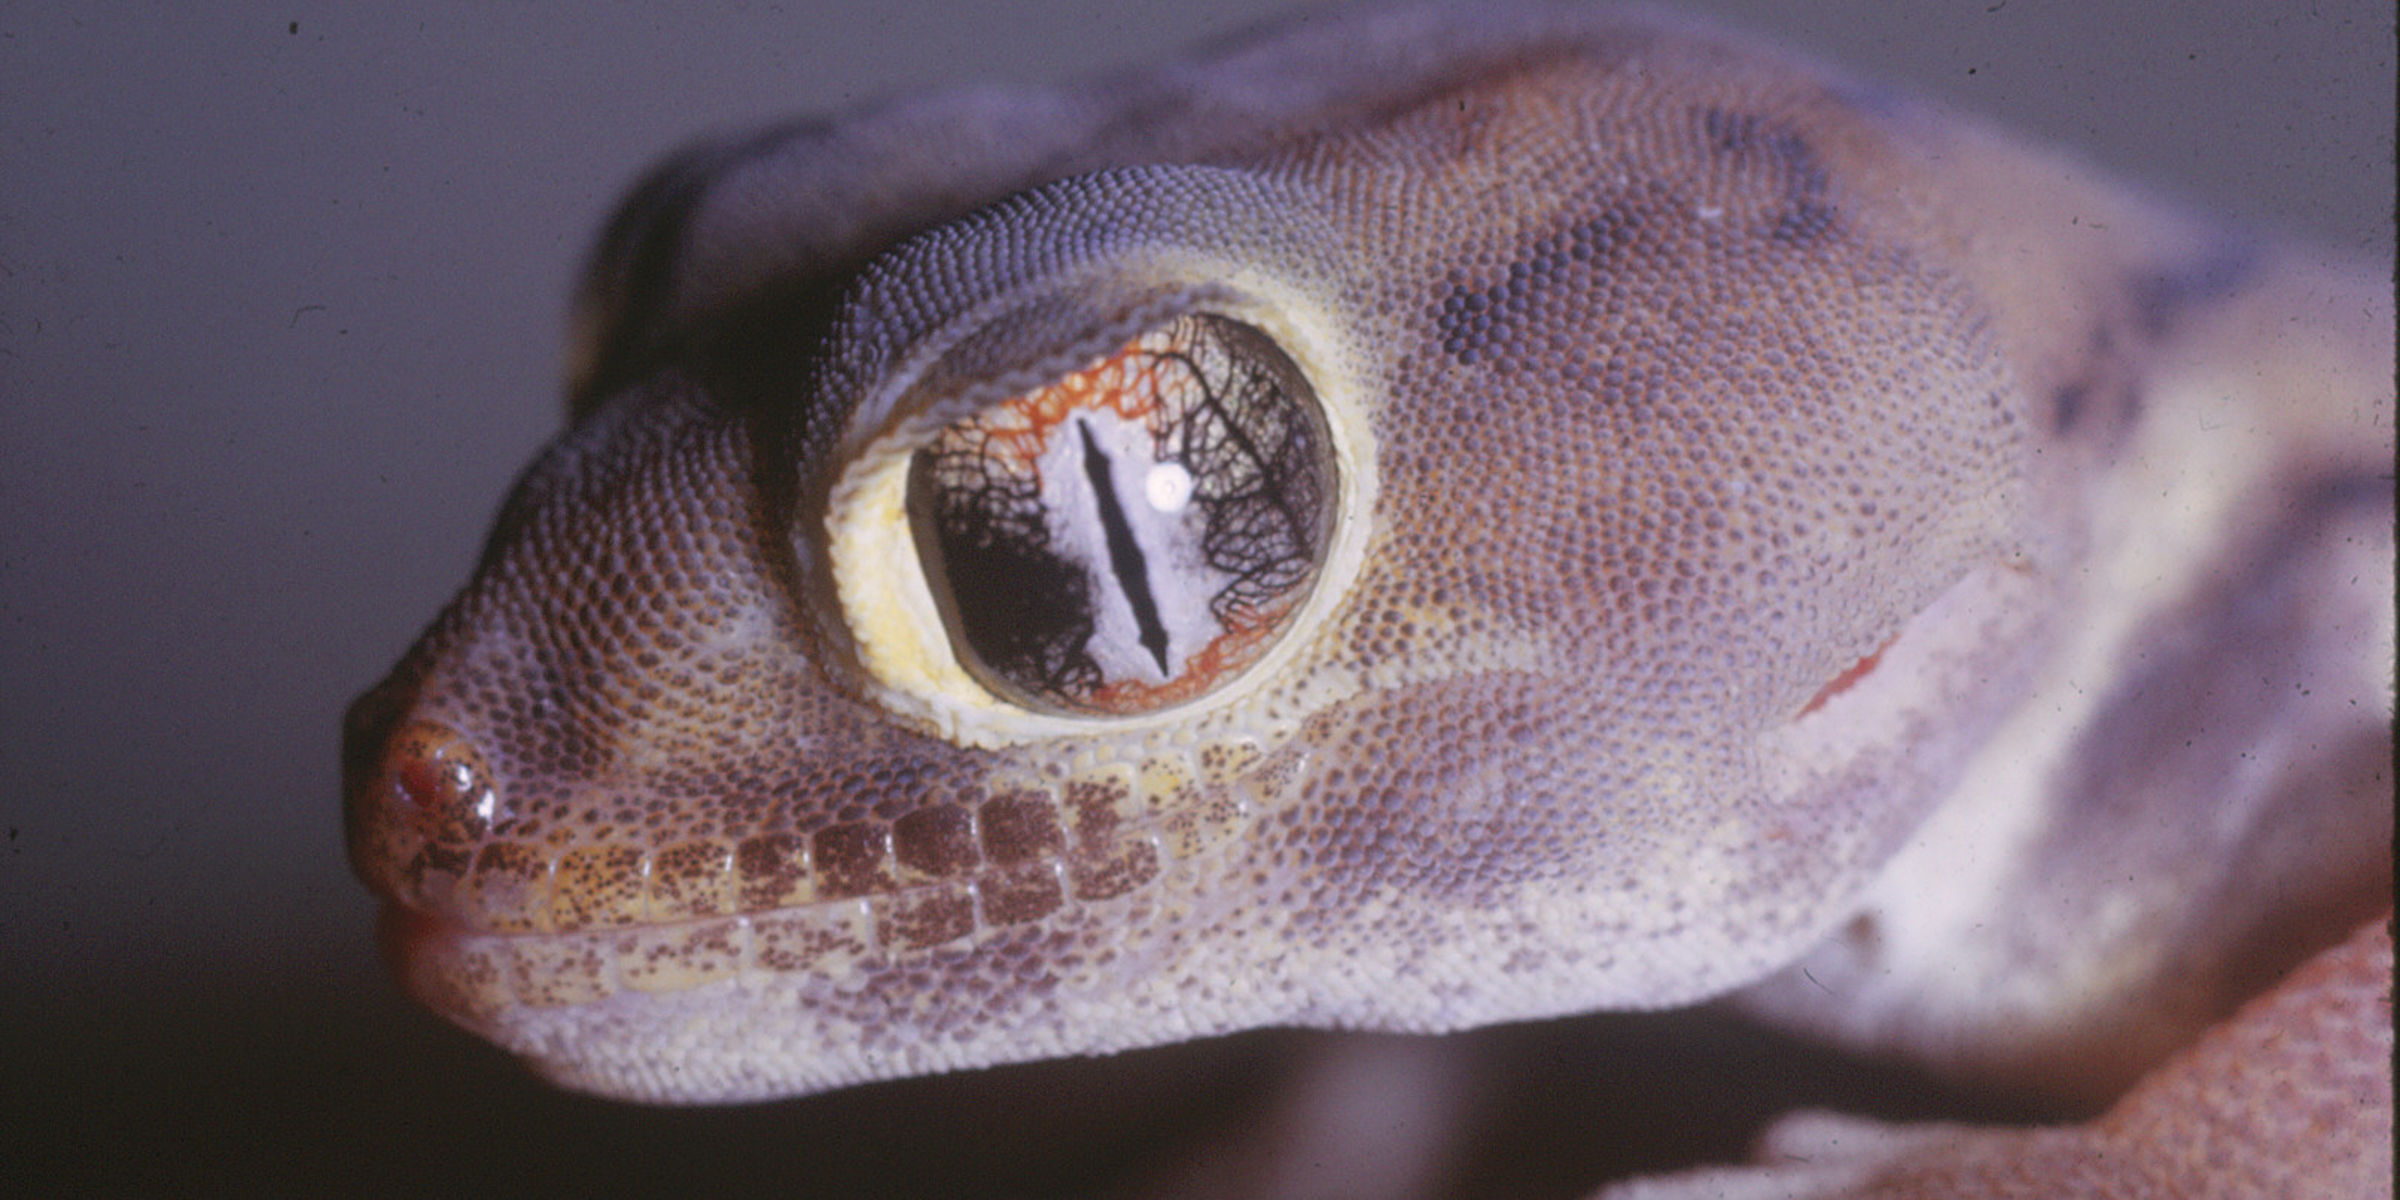 Close-up view of a gecko showing only its head and frog-like eyes.